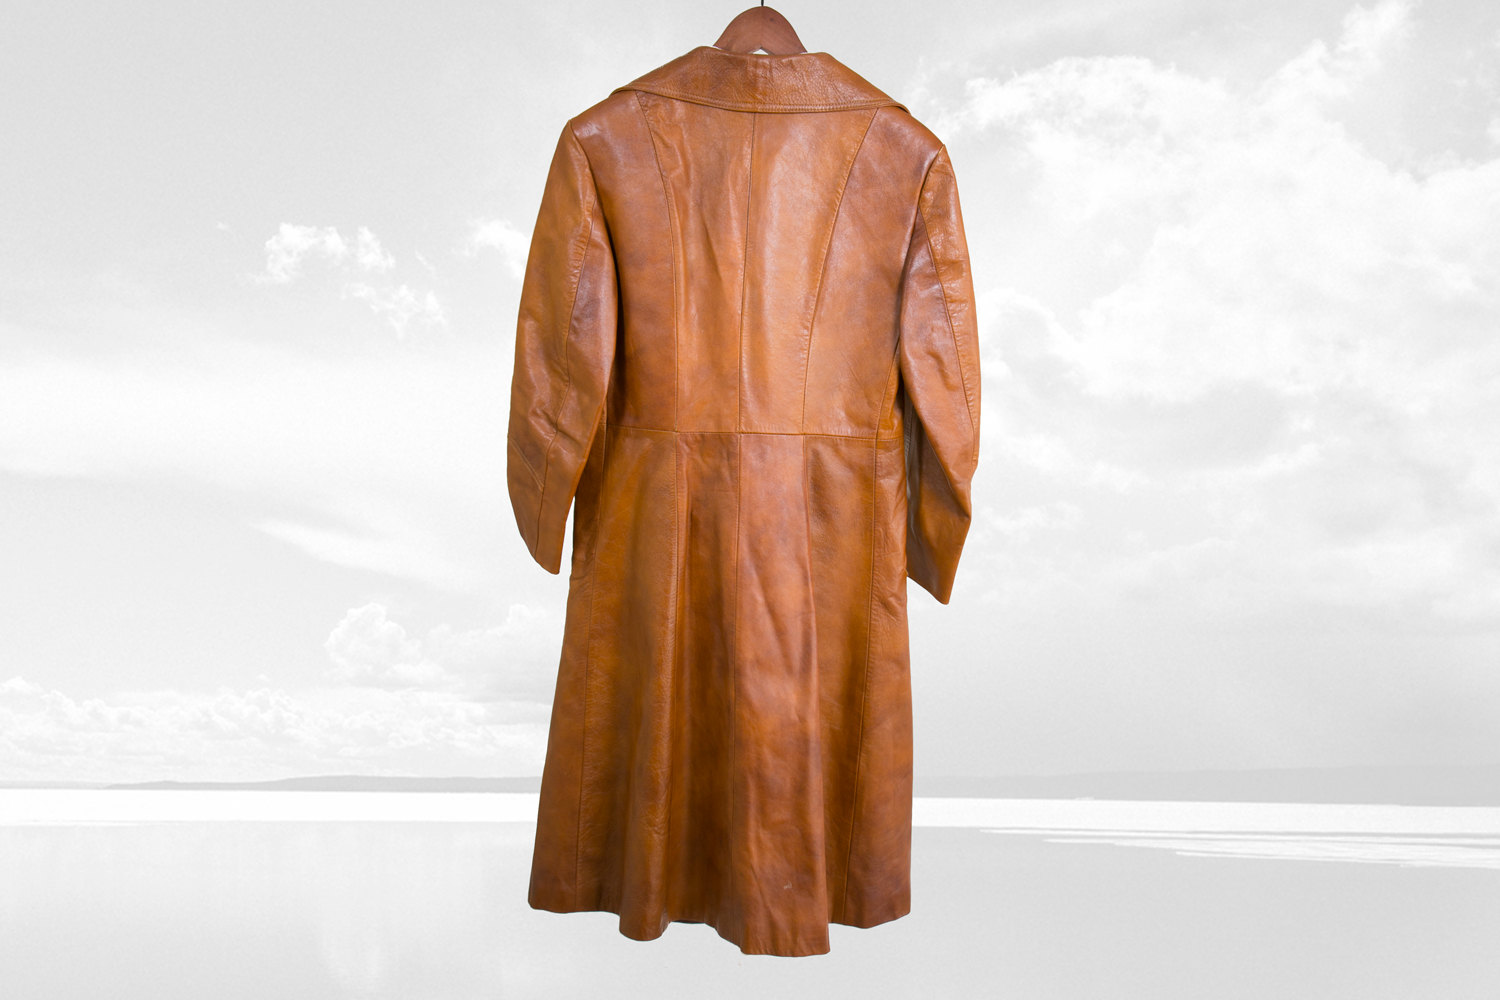 Rare Vintage 1970's Women's Leather Mod Dress Coat - Hipster, Indie, Folk, Country, Hippie, Retro